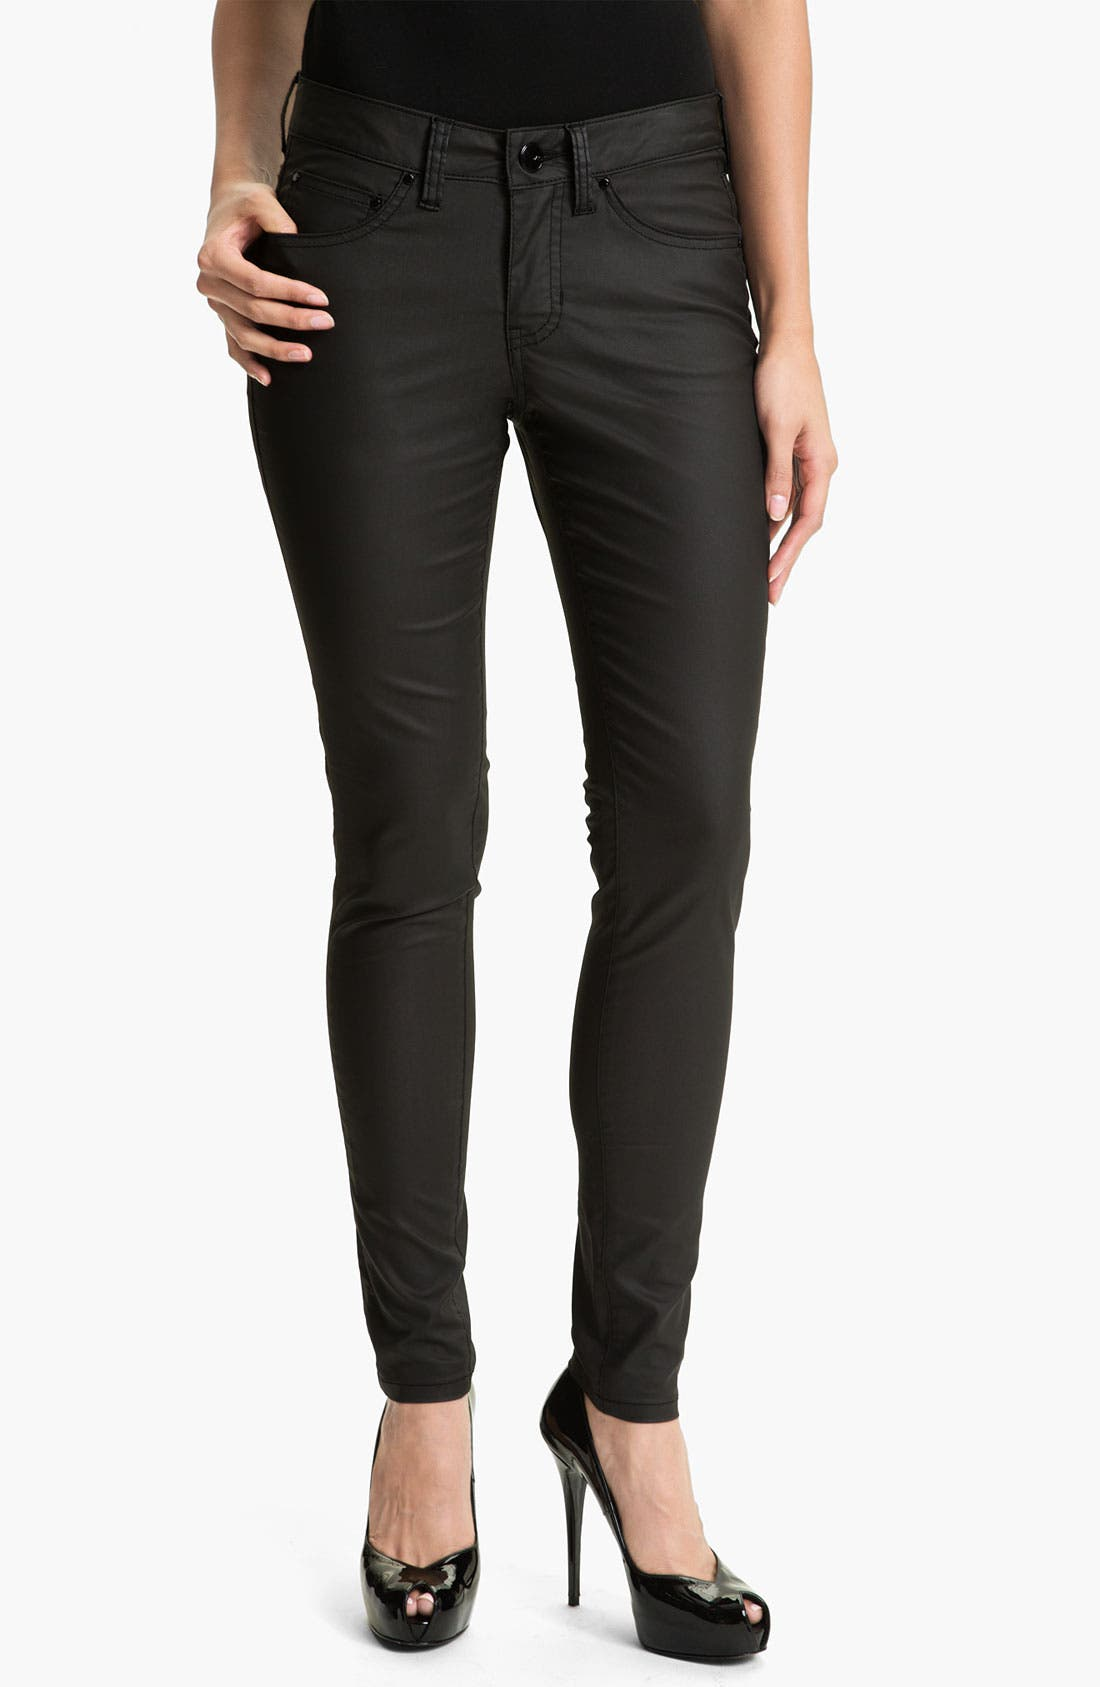 Alternate Image 1 Selected - Jag Jeans 'Chloe' Faux Leather Pants (Petite)